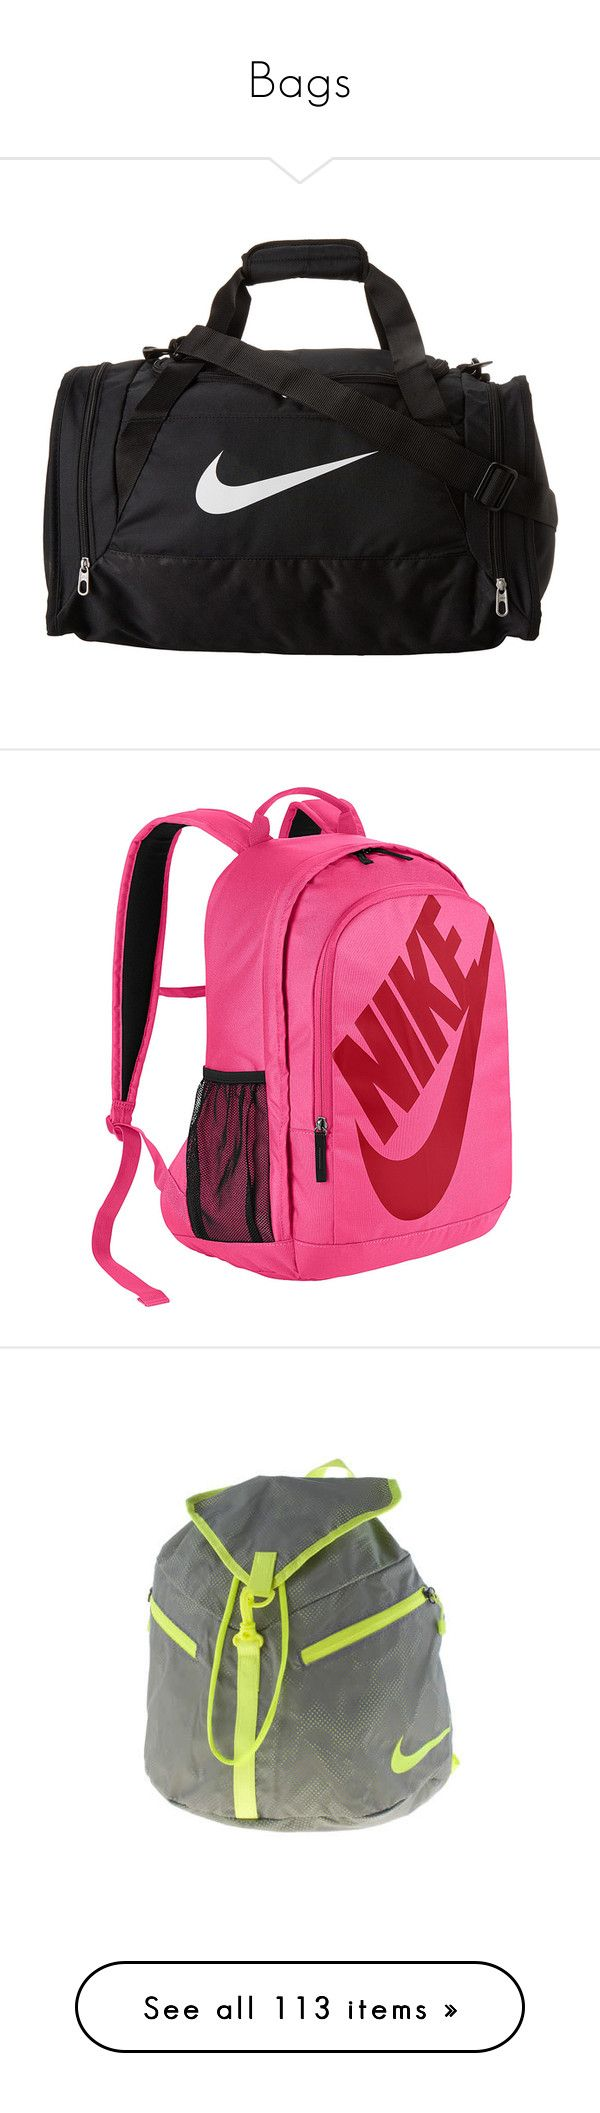 """""""Bags"""" by kelseys2 ❤ liked on Polyvore featuring bags, luggage, sport, nike, accessories, backpacks, pink, pink backpack, day pack backpack and padded backpack"""